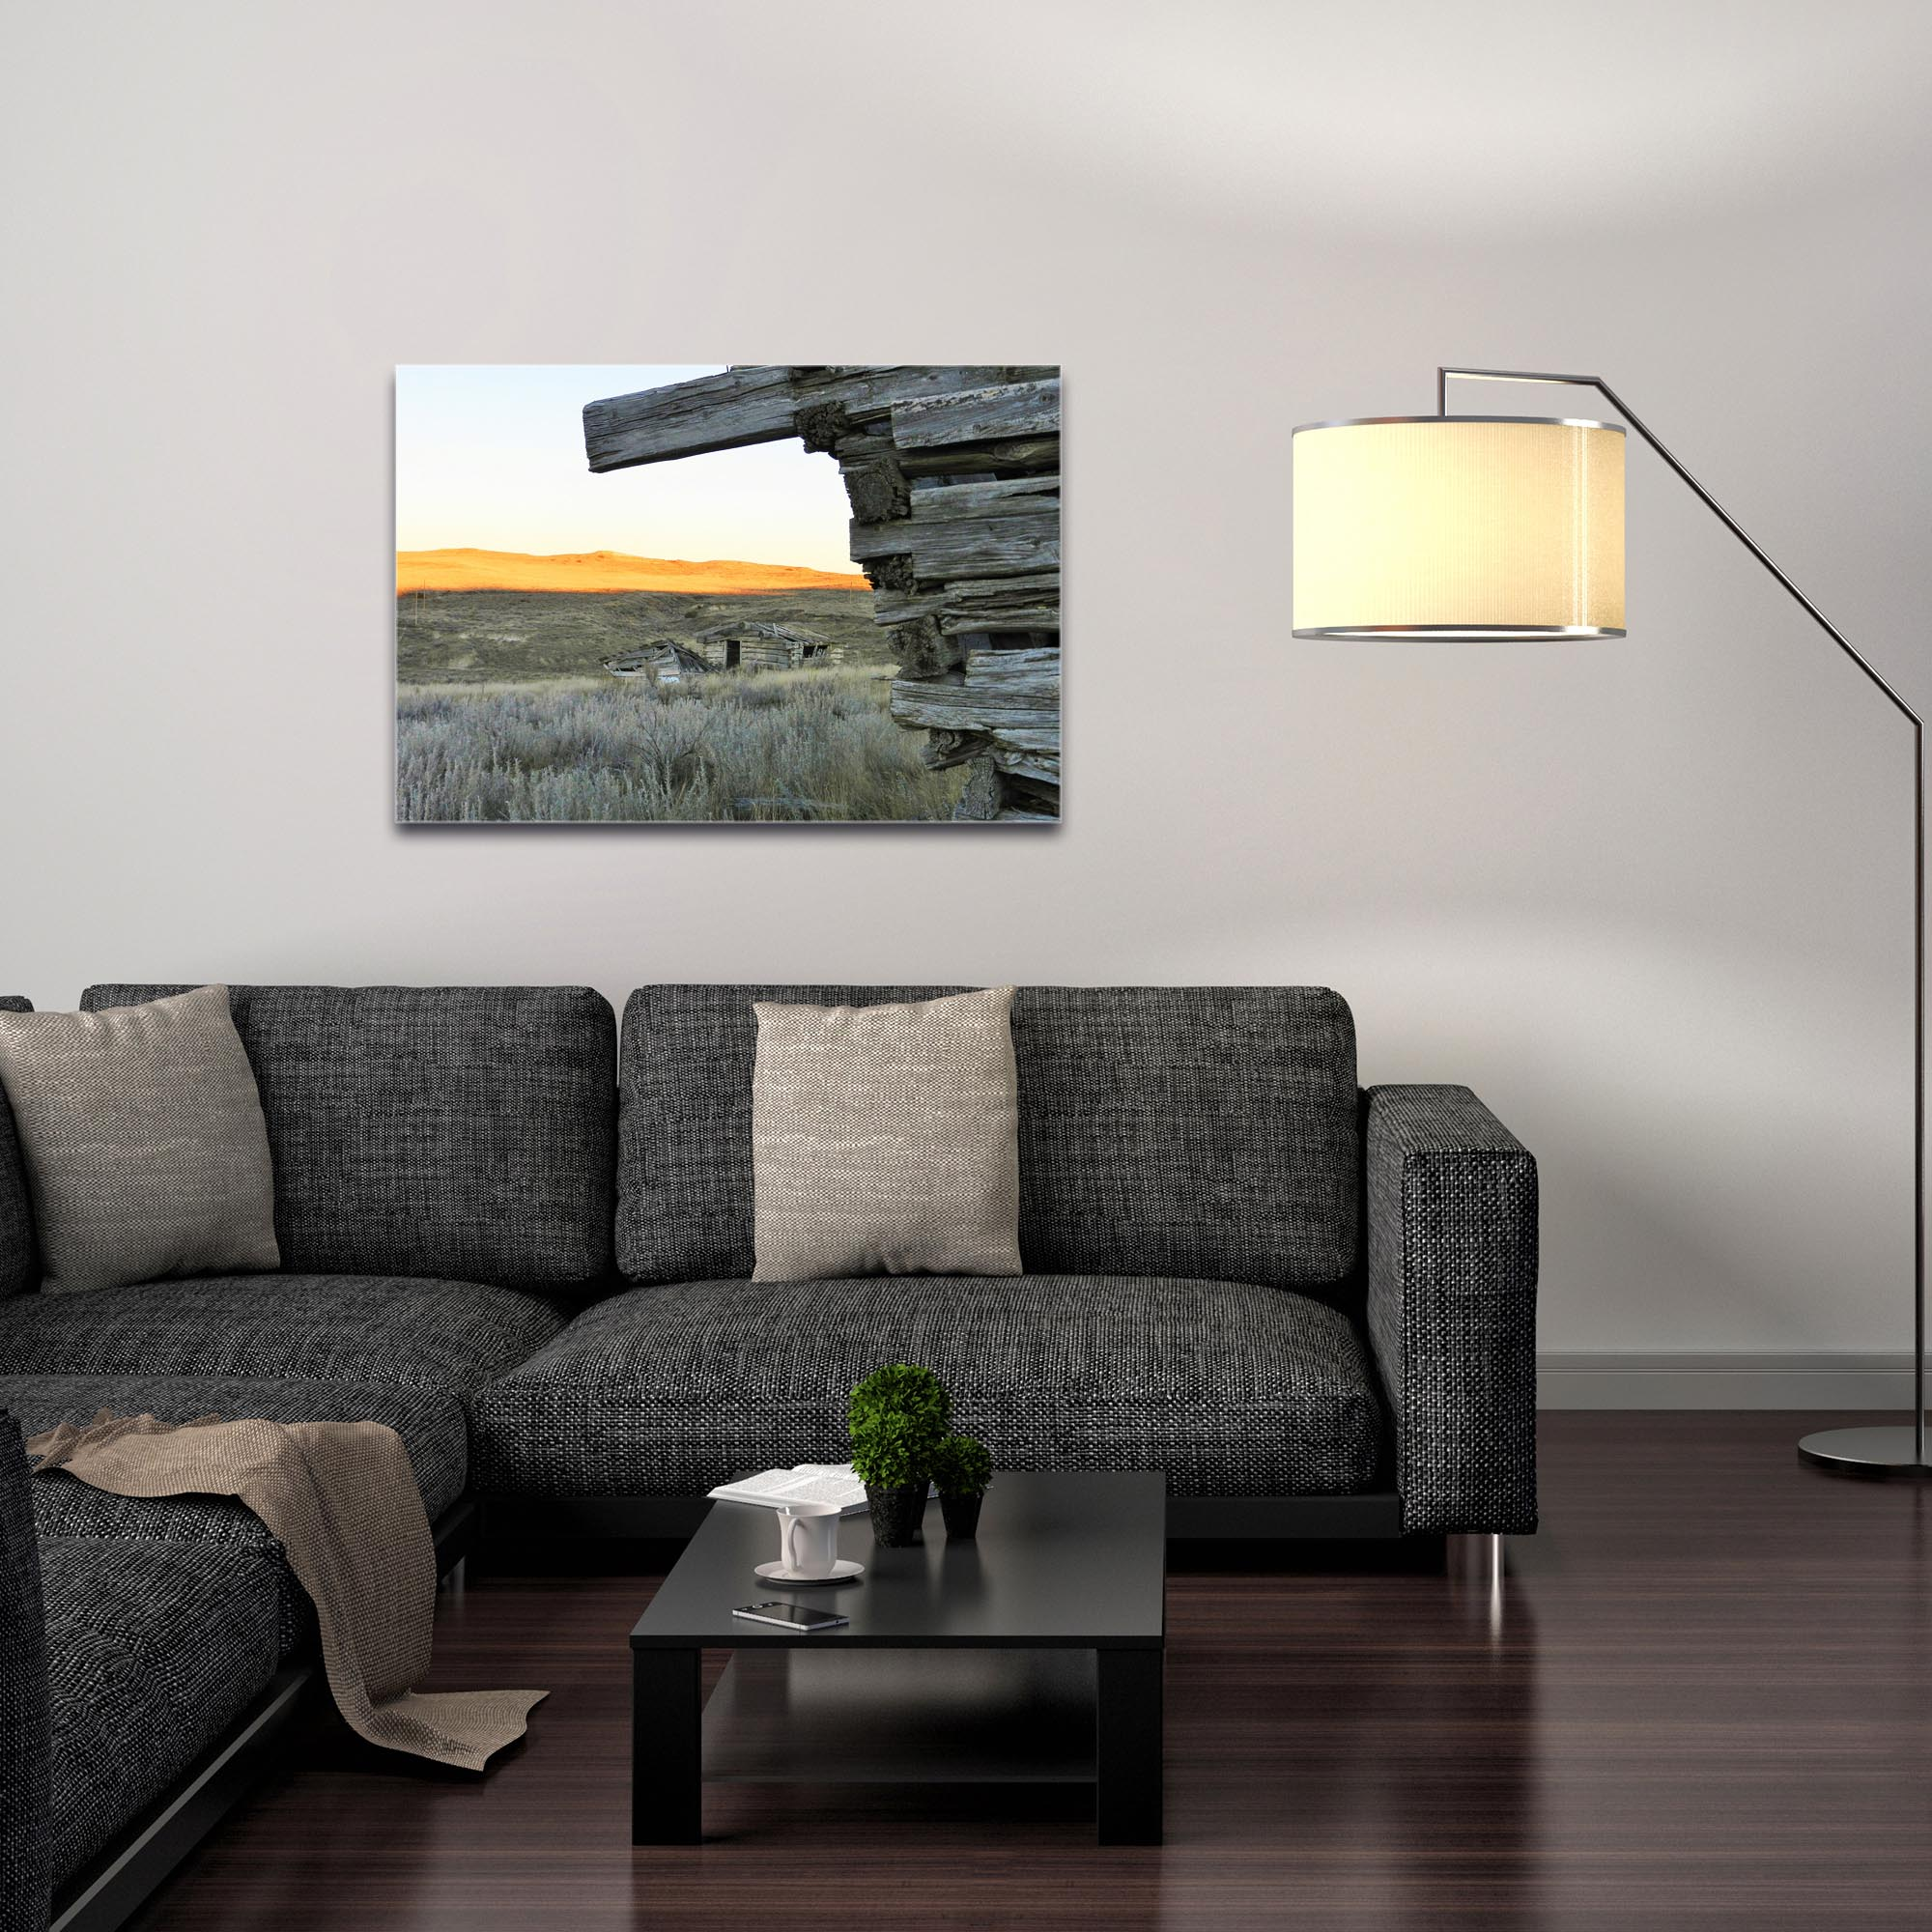 Western Wall Art 'The Corner' - American West Decor on Metal or Plexiglass - Image 3